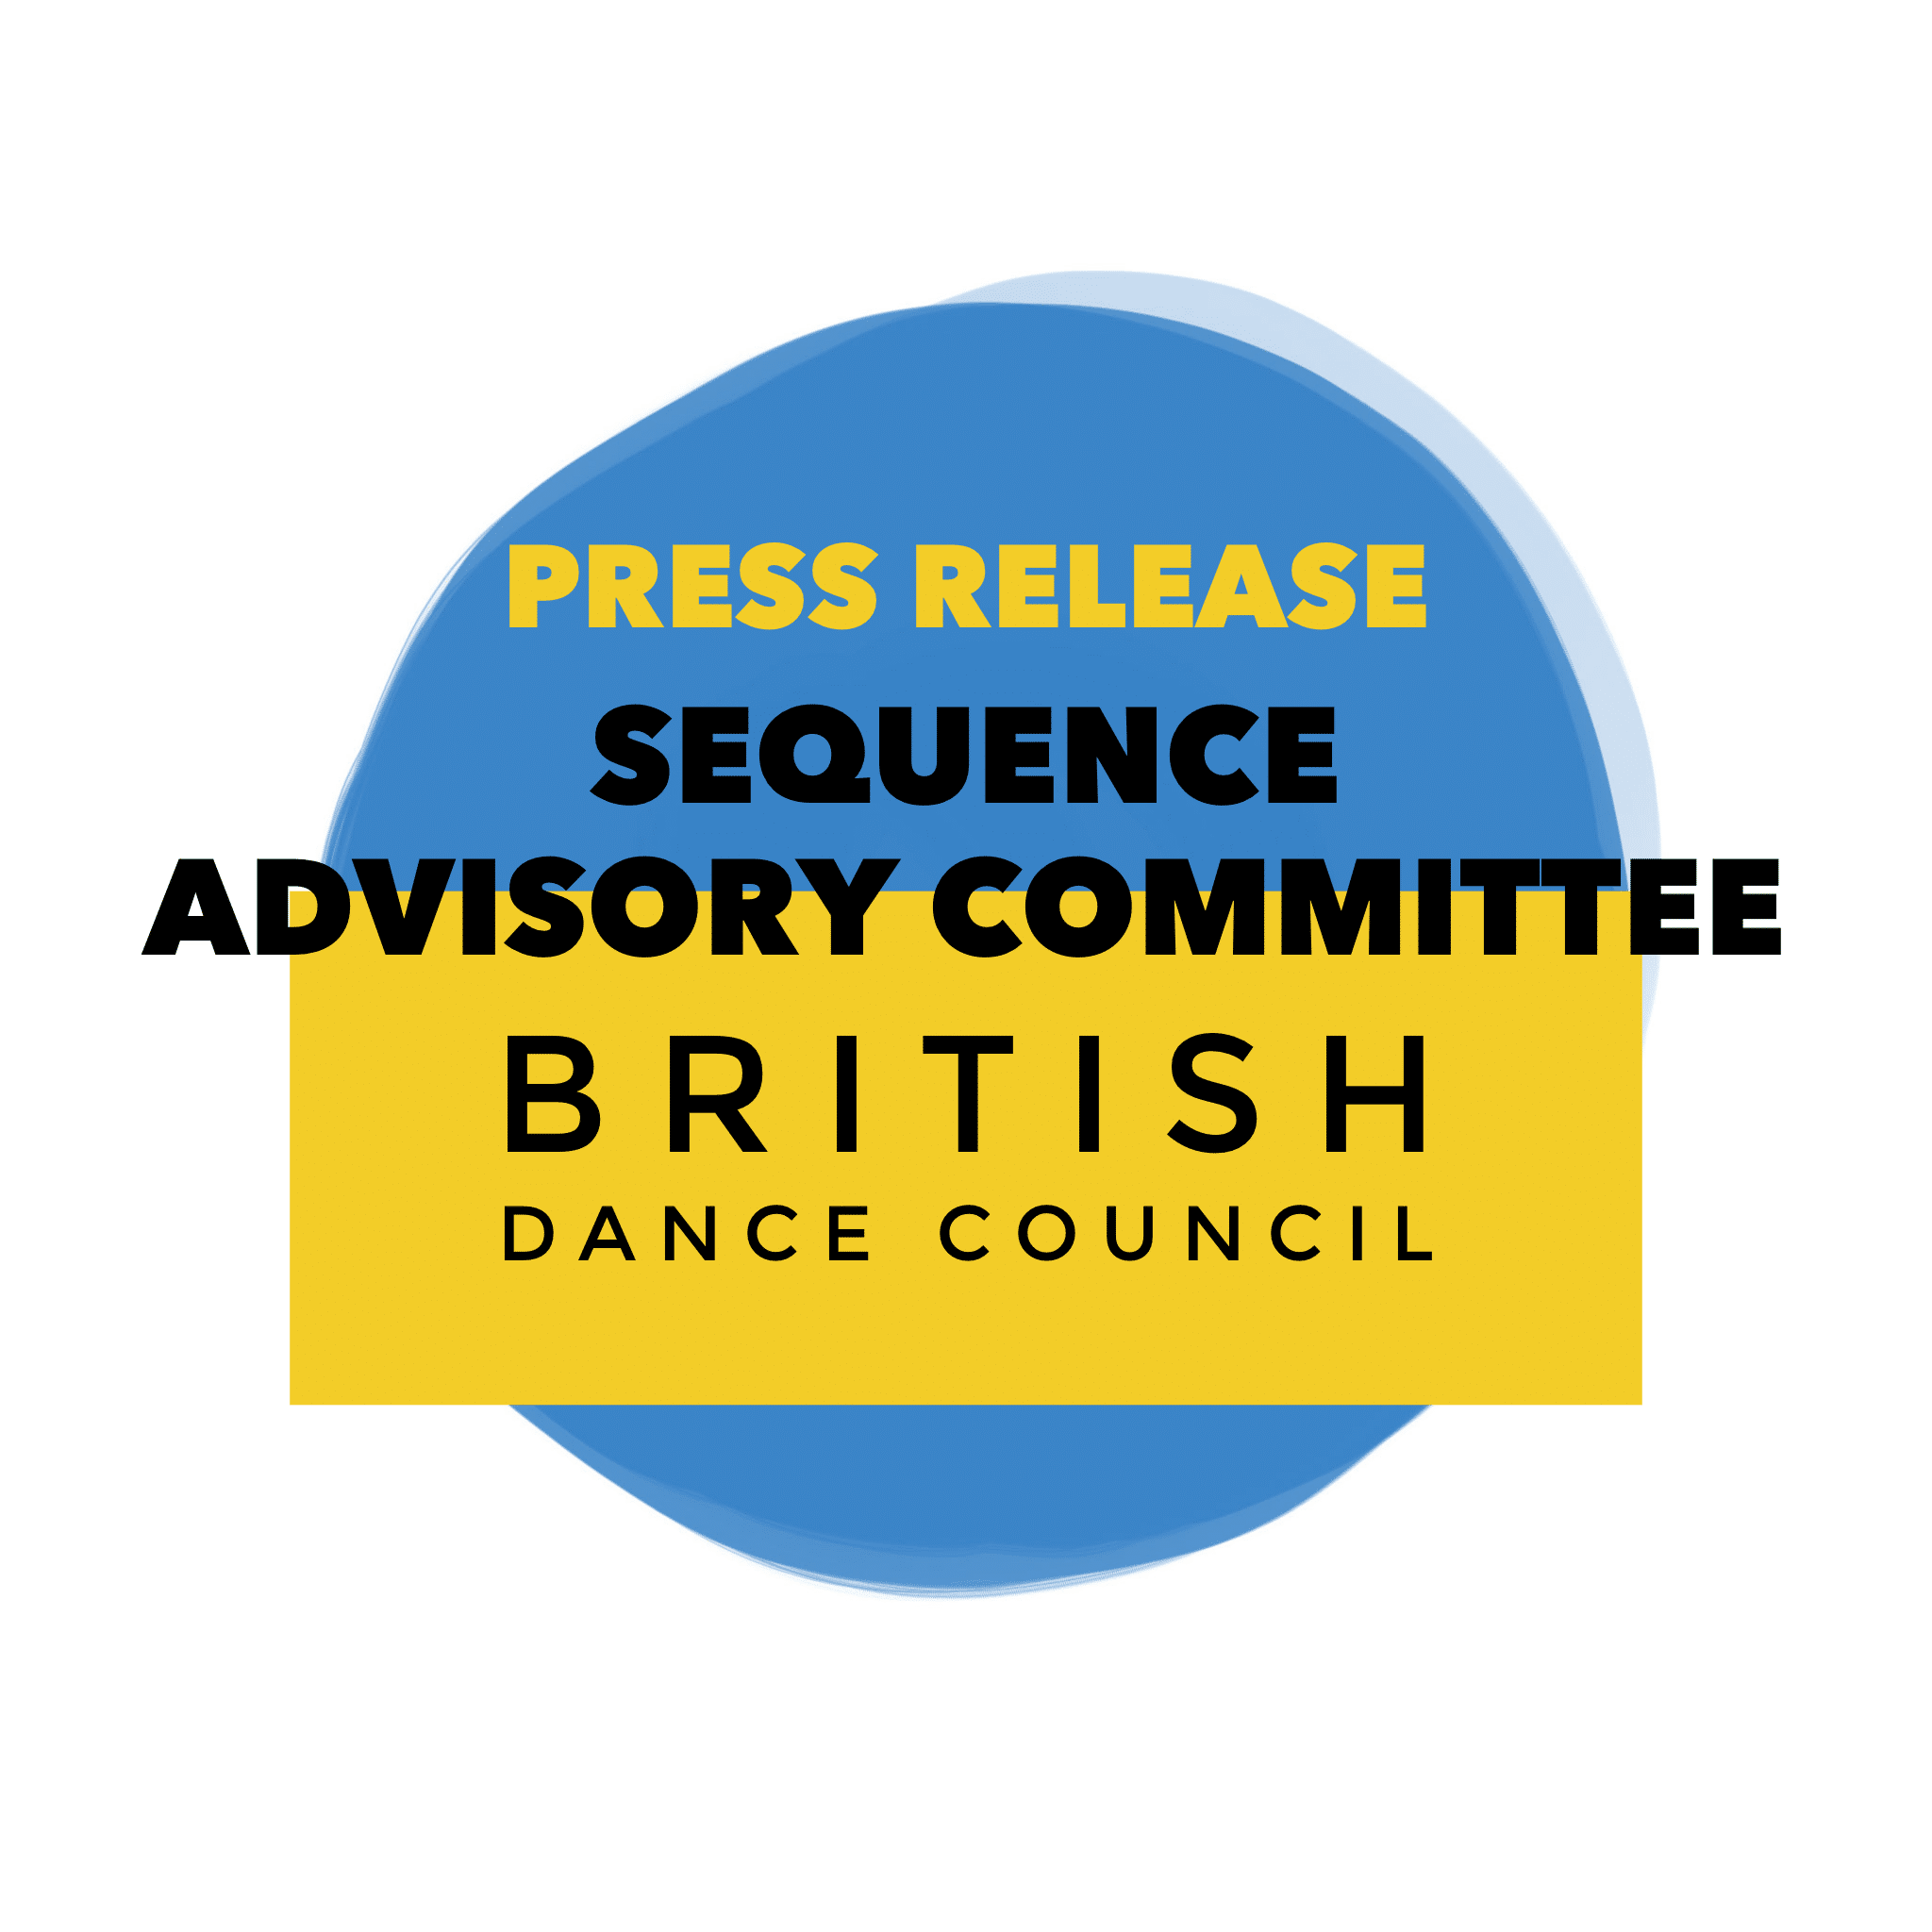 Sequence Advisory Committee Press Release